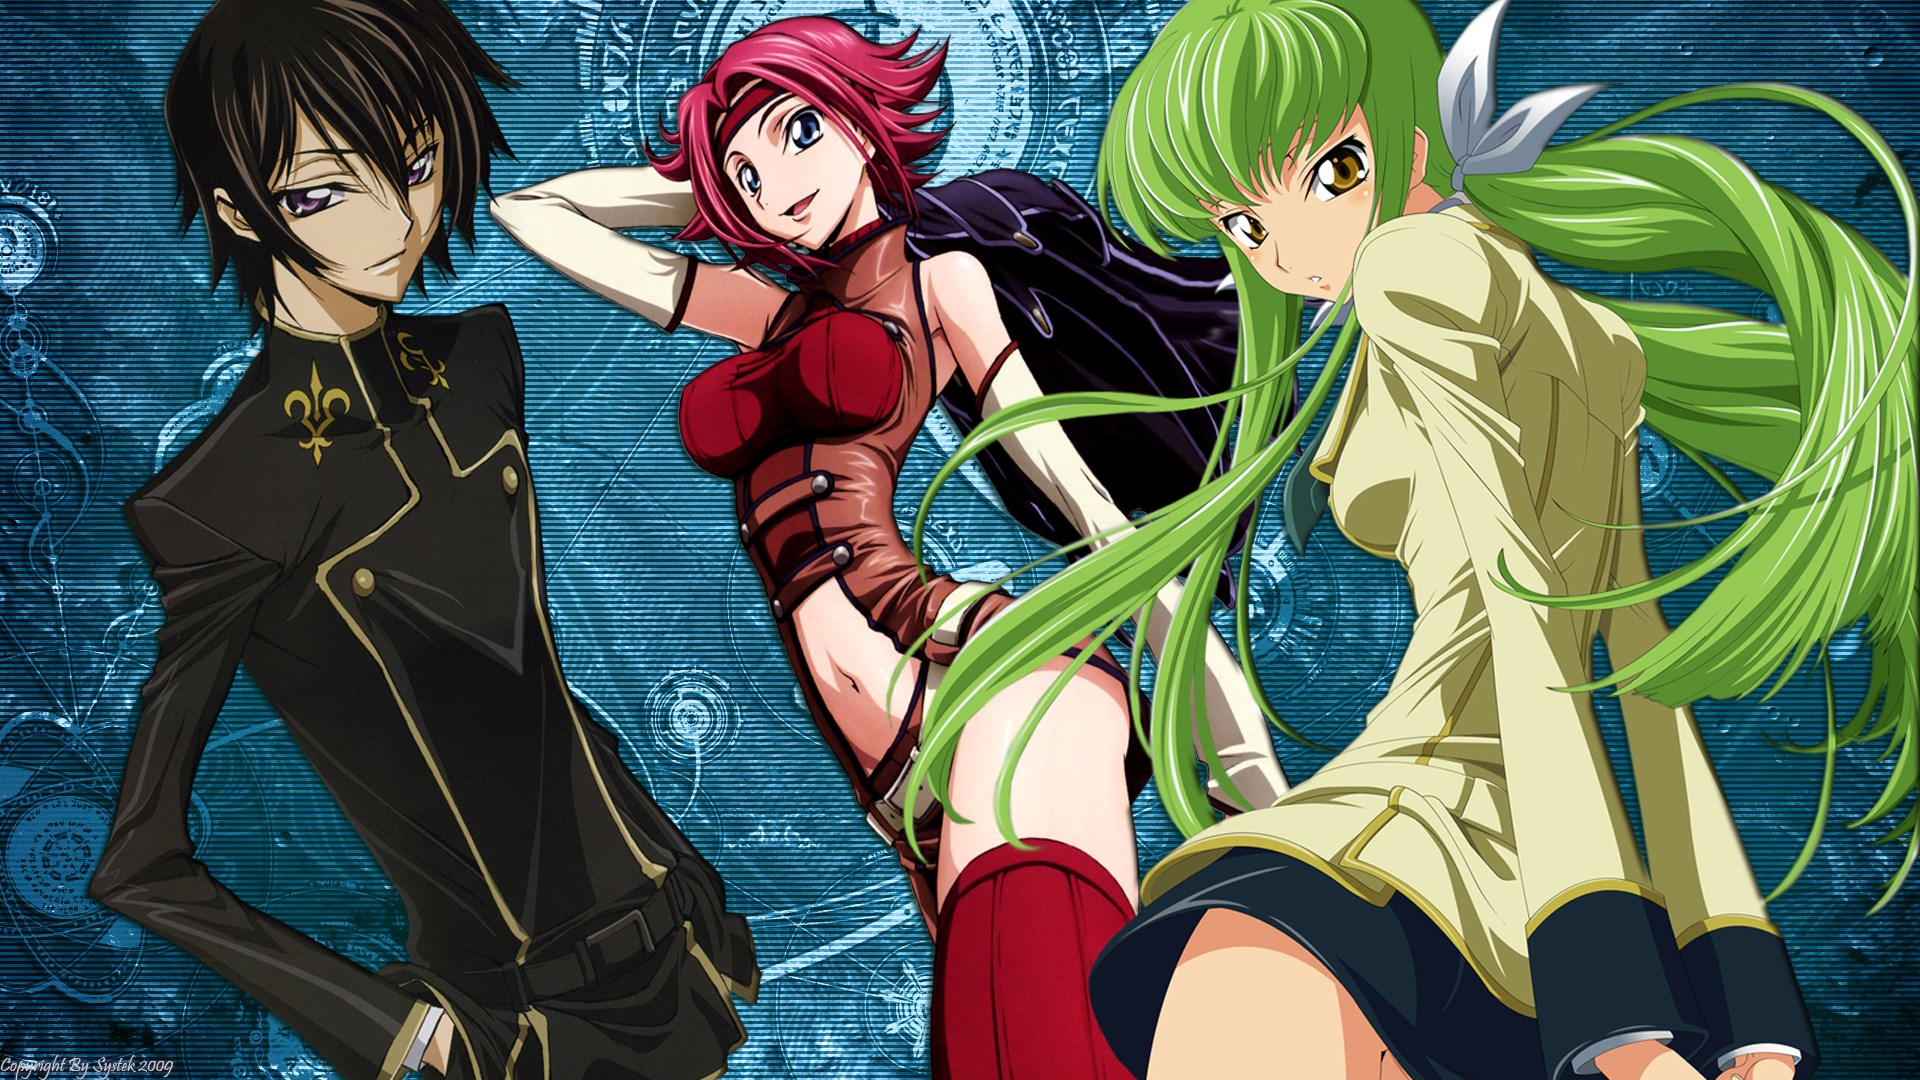 1920x1080-free-and-screensavers-for-code-geass-wallpaper-wp380811